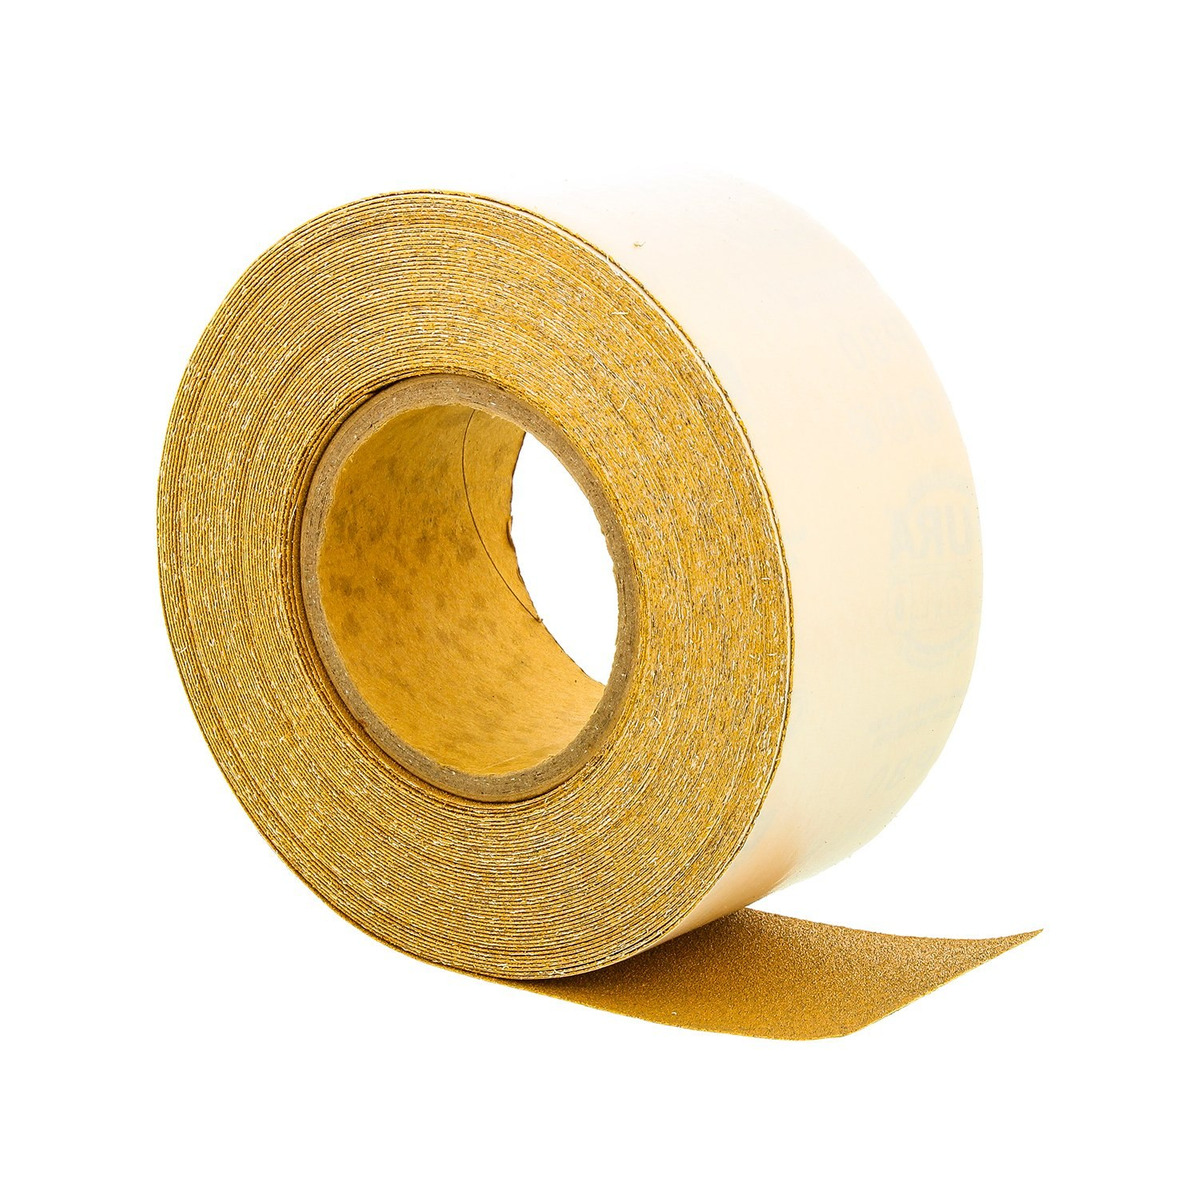 Dura-Gold Longboard Continuous Roll 20 Yards long ... Premium 80 Grit Gold